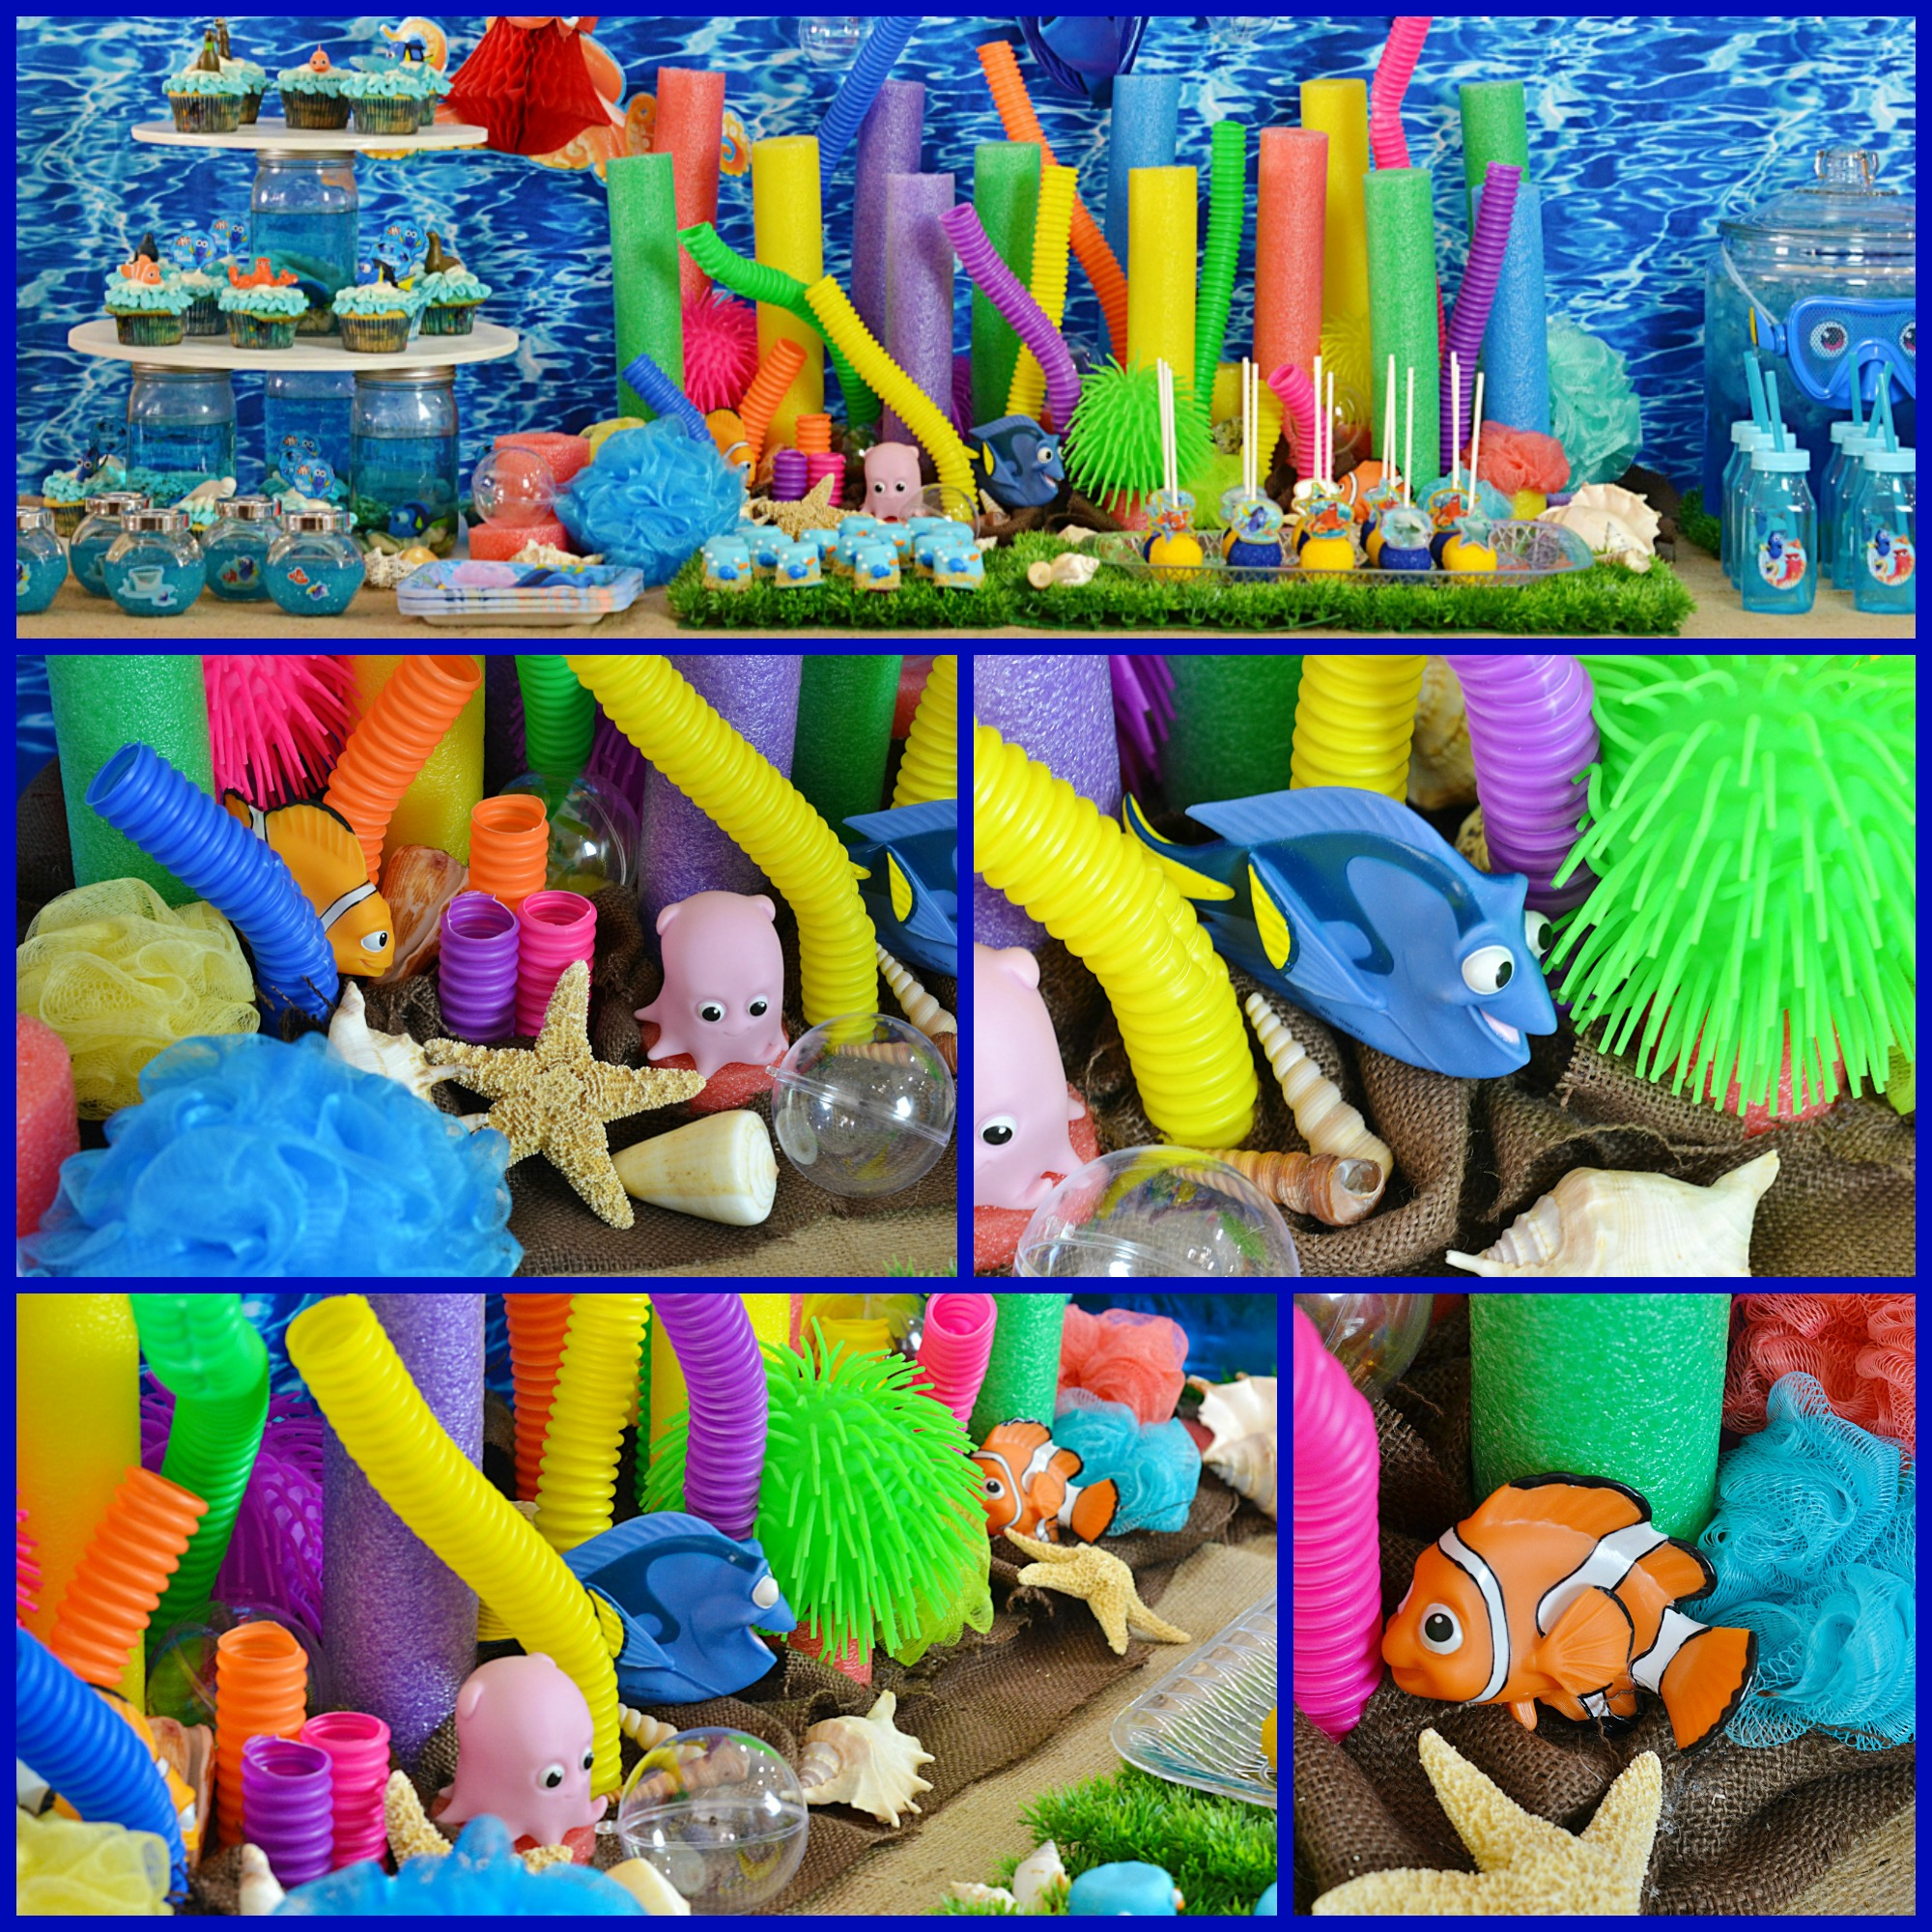 Finding Dory Coral Reef Party Centerpiece | Create a fun and easy centerpiece with inexpensive items and set the tone for a great party.